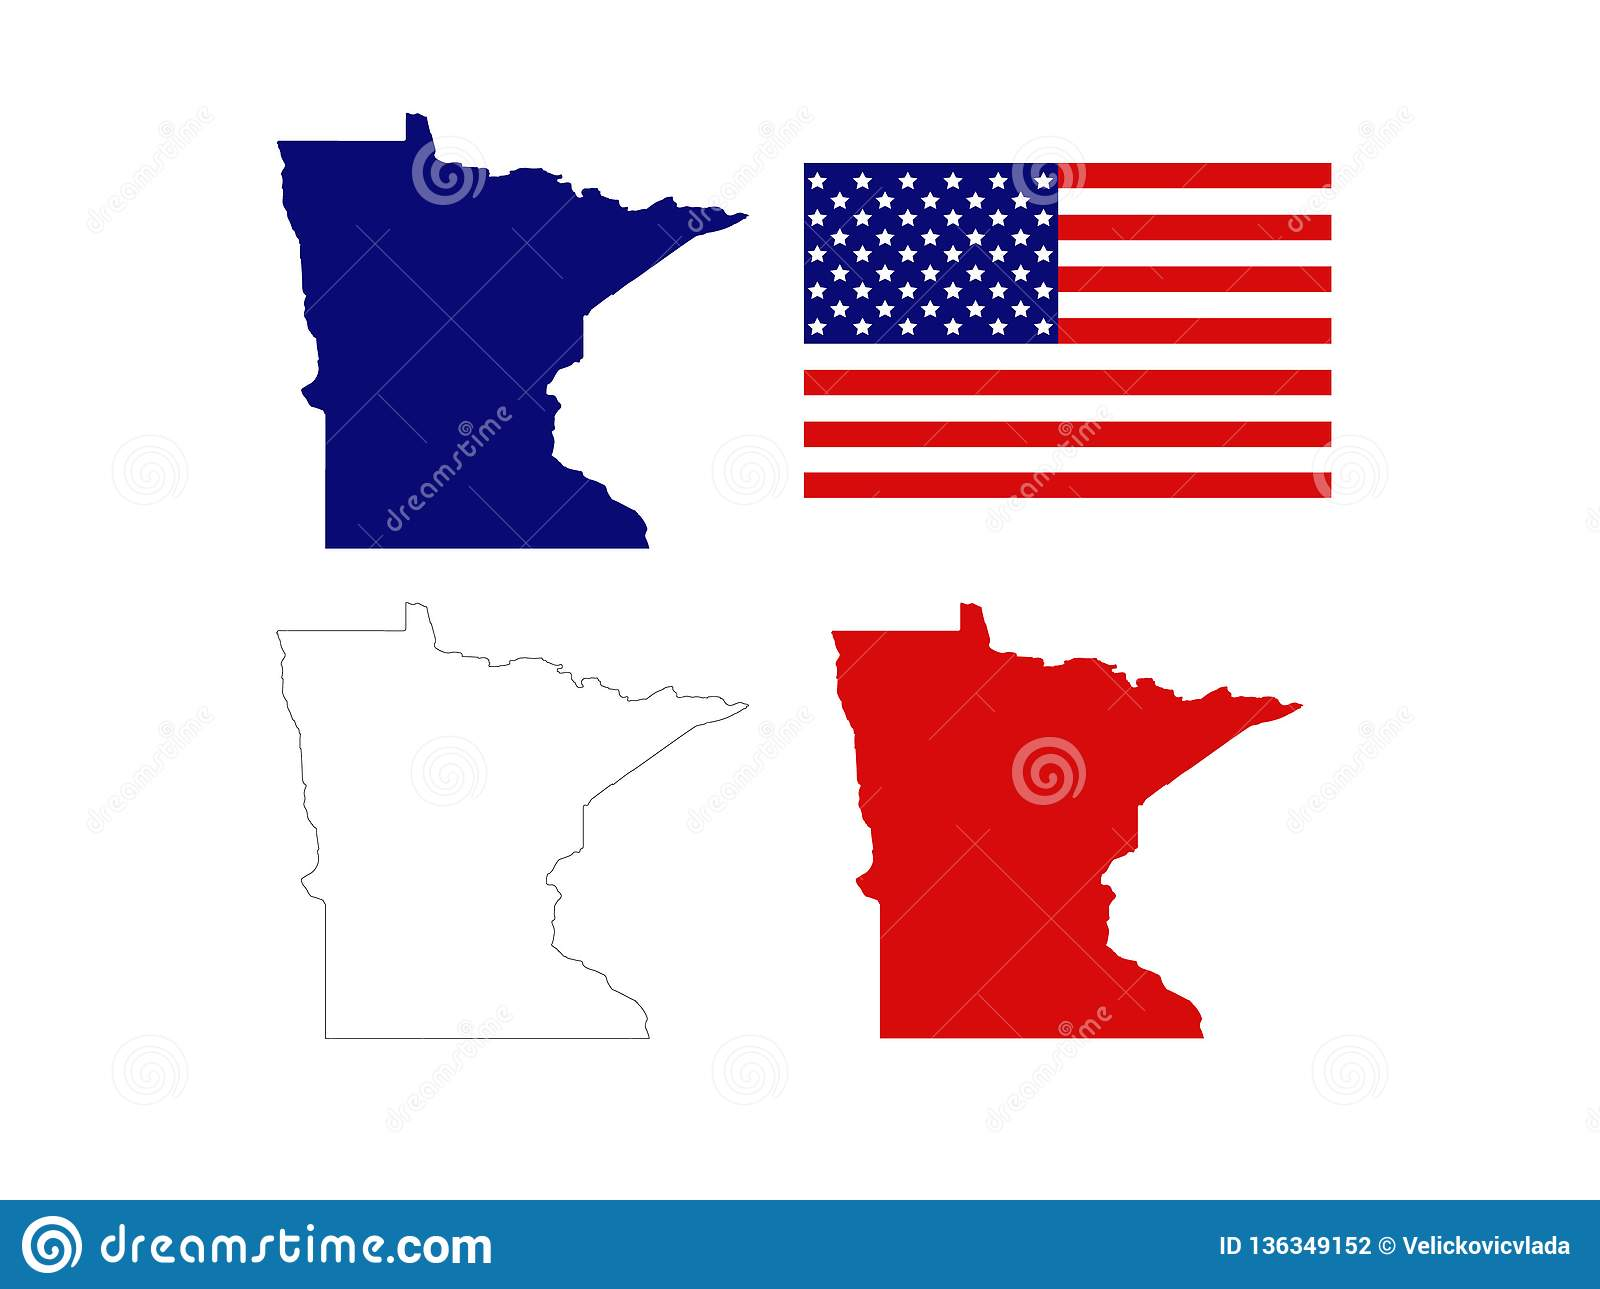 Image of: Minnesota Maps With Usa Flag State In Northern Regions Of The United States Stock Vector Illustration Of America North 136349152